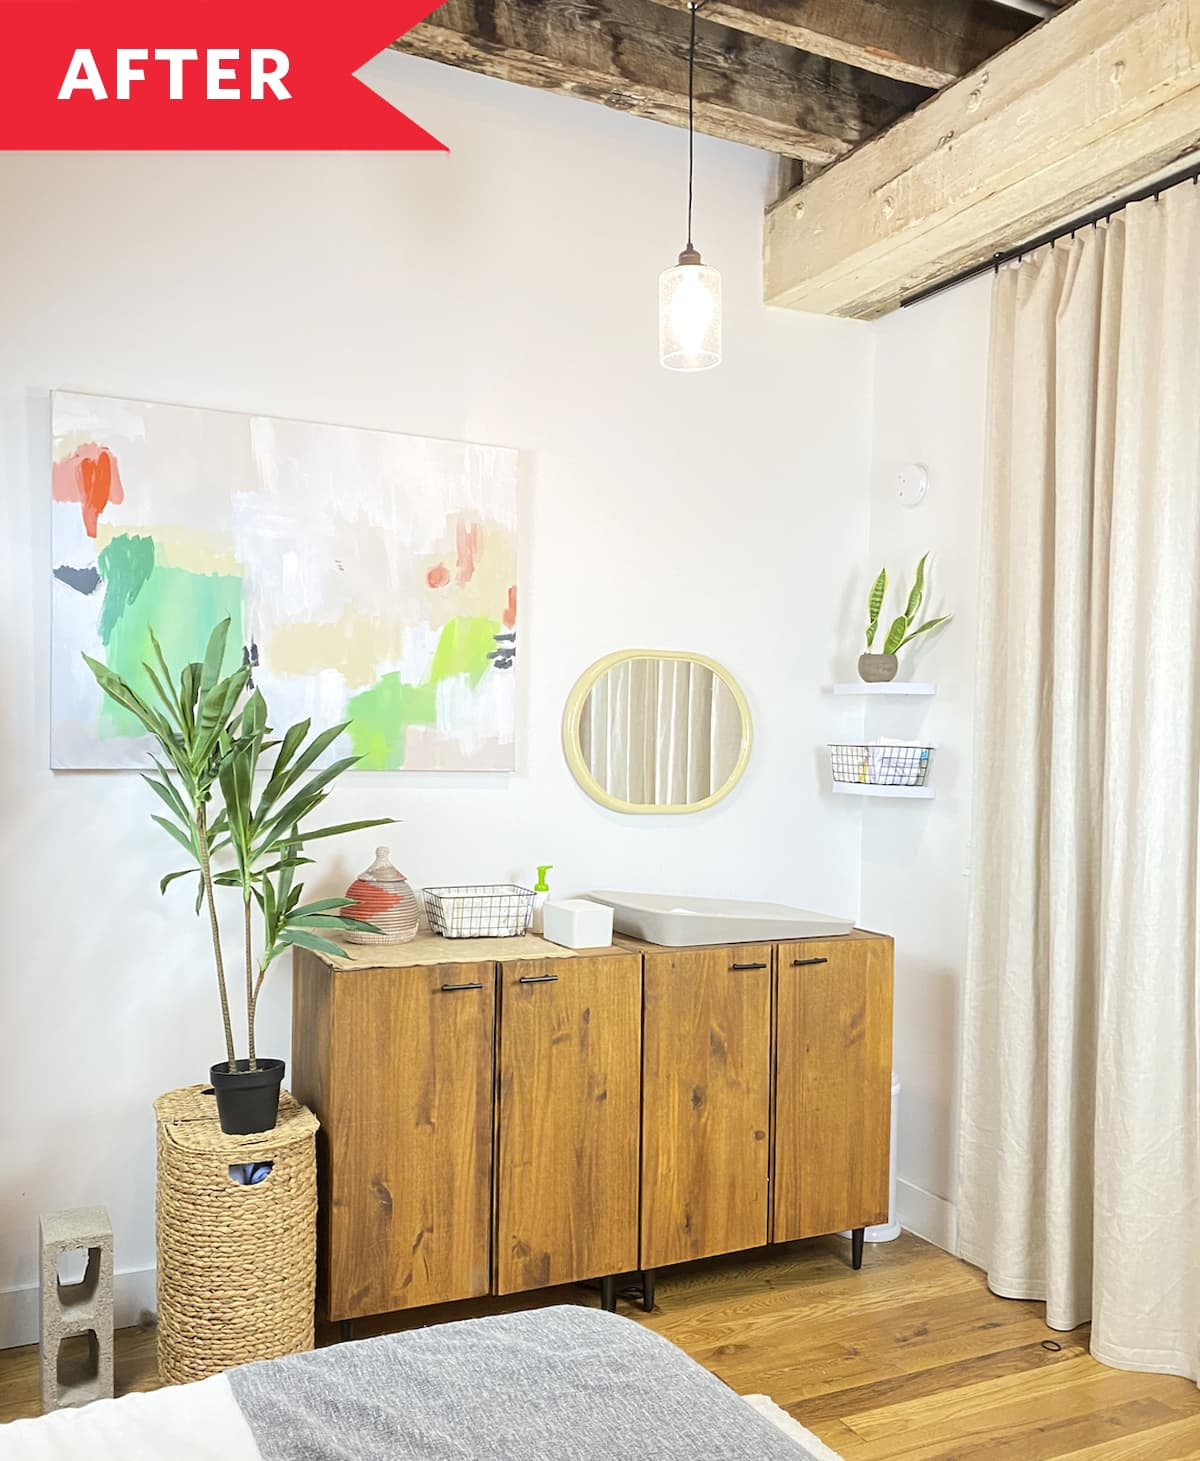 10 Best IKEA Hacks of 2020 | Apartment Therapy